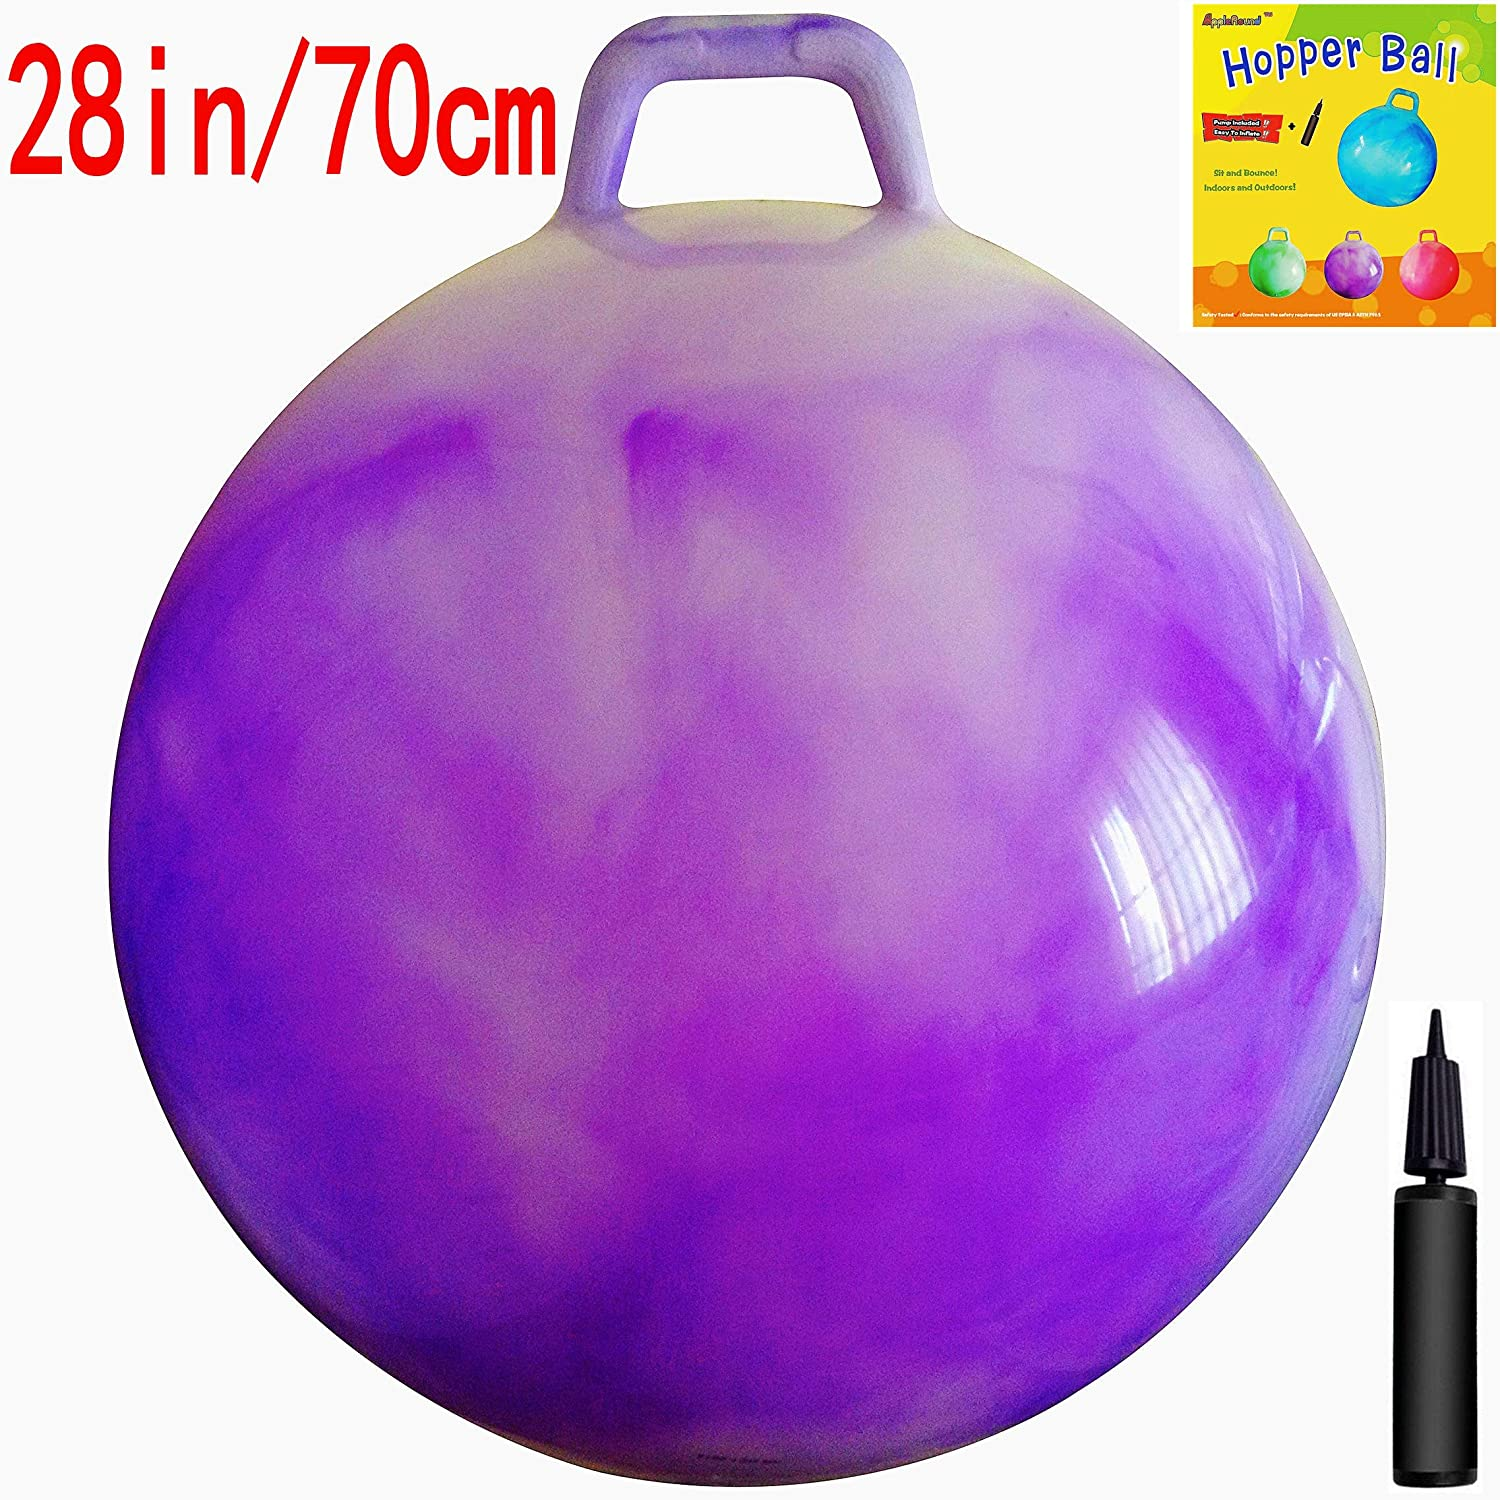 AppleRound Space Hopper Ball with Air Pump 28in 70cm Diameter for Age 13 Hop Ball Kangaroo Bouncer Hoppity Hop Jumping Ball Sit Bounce